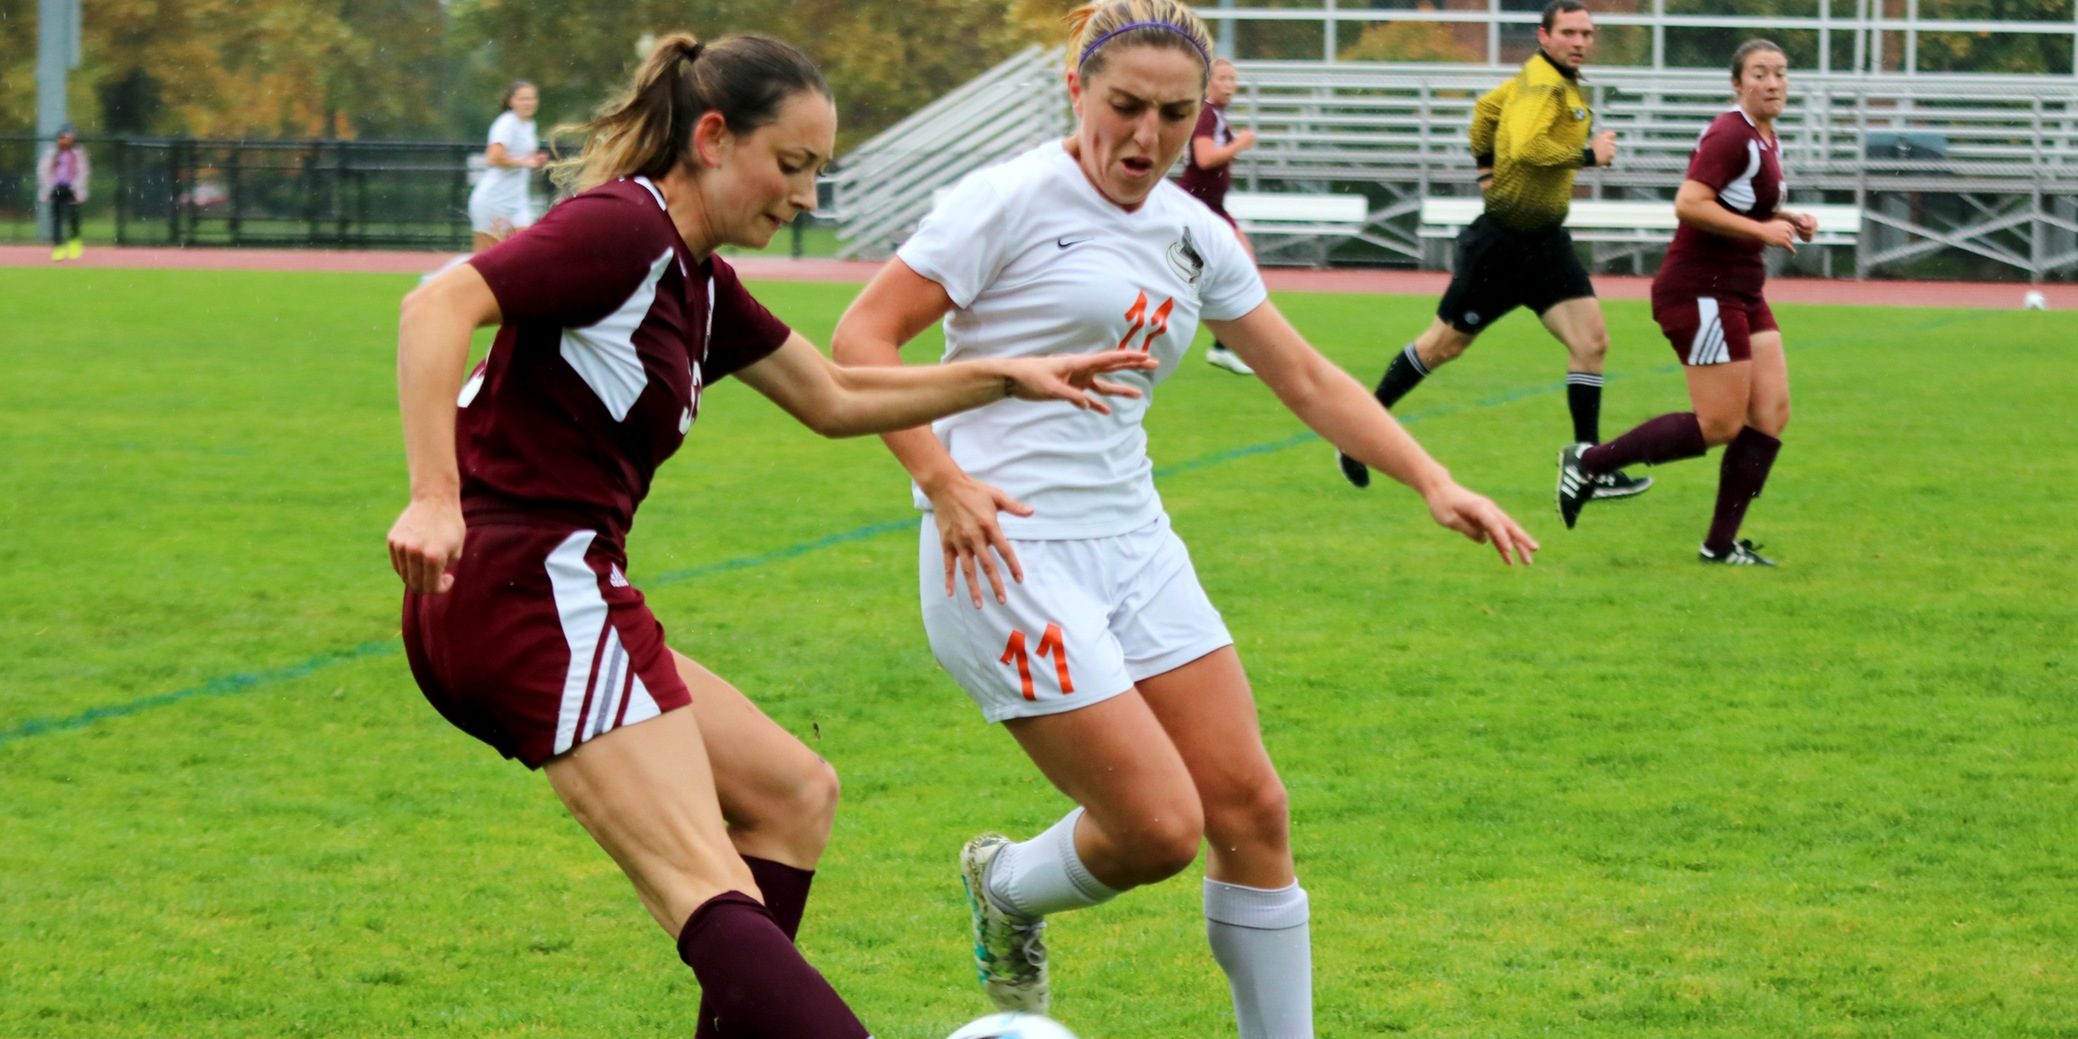 Pios have tough outing at Puget Sound